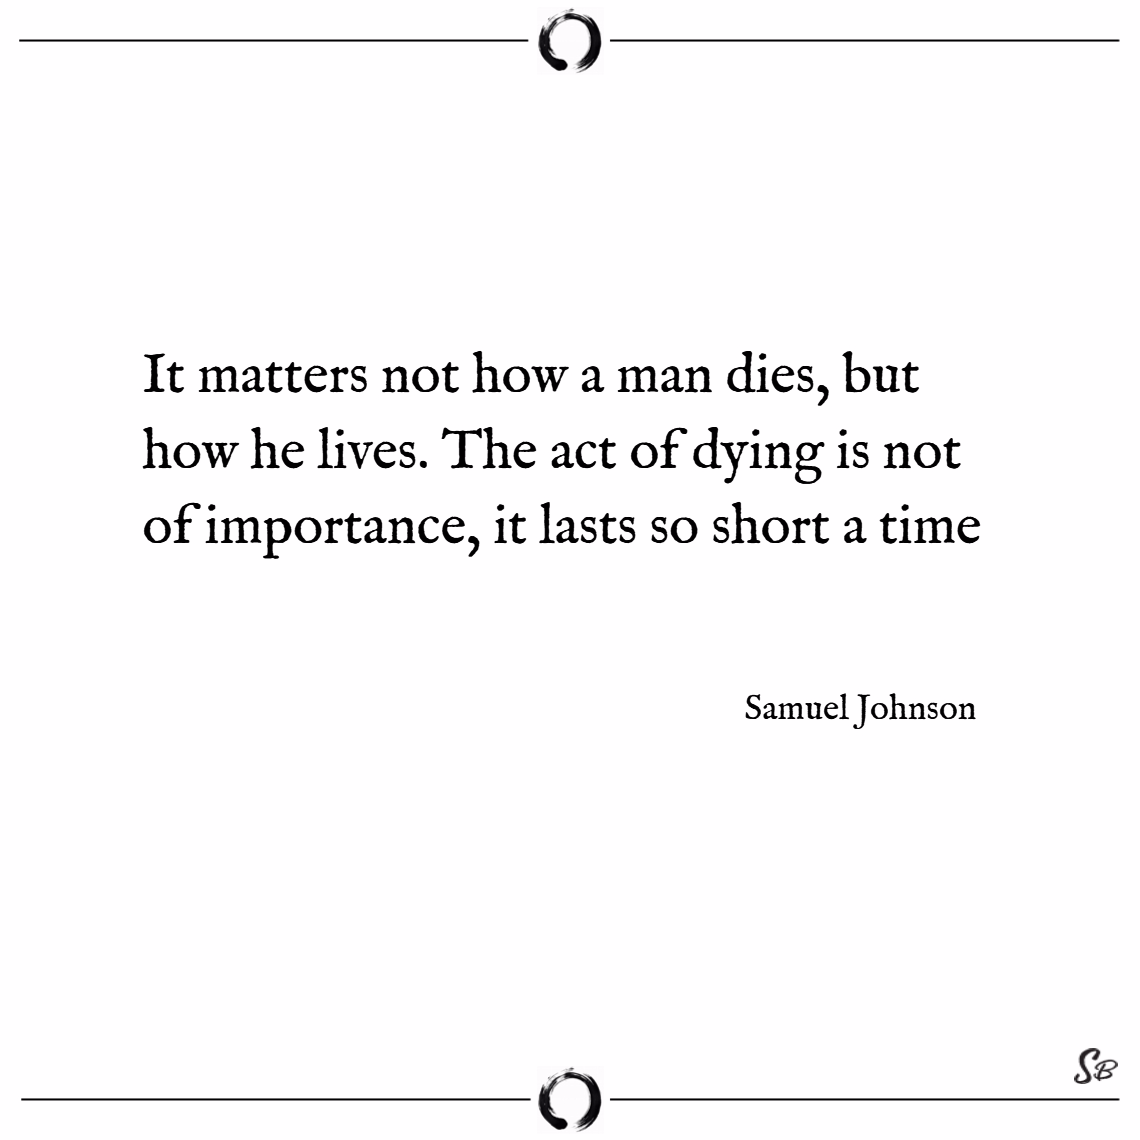 It matters not how a man dies, but how he lives. the act of dying is not of importance, it lasts so short a time. – samuel johnson